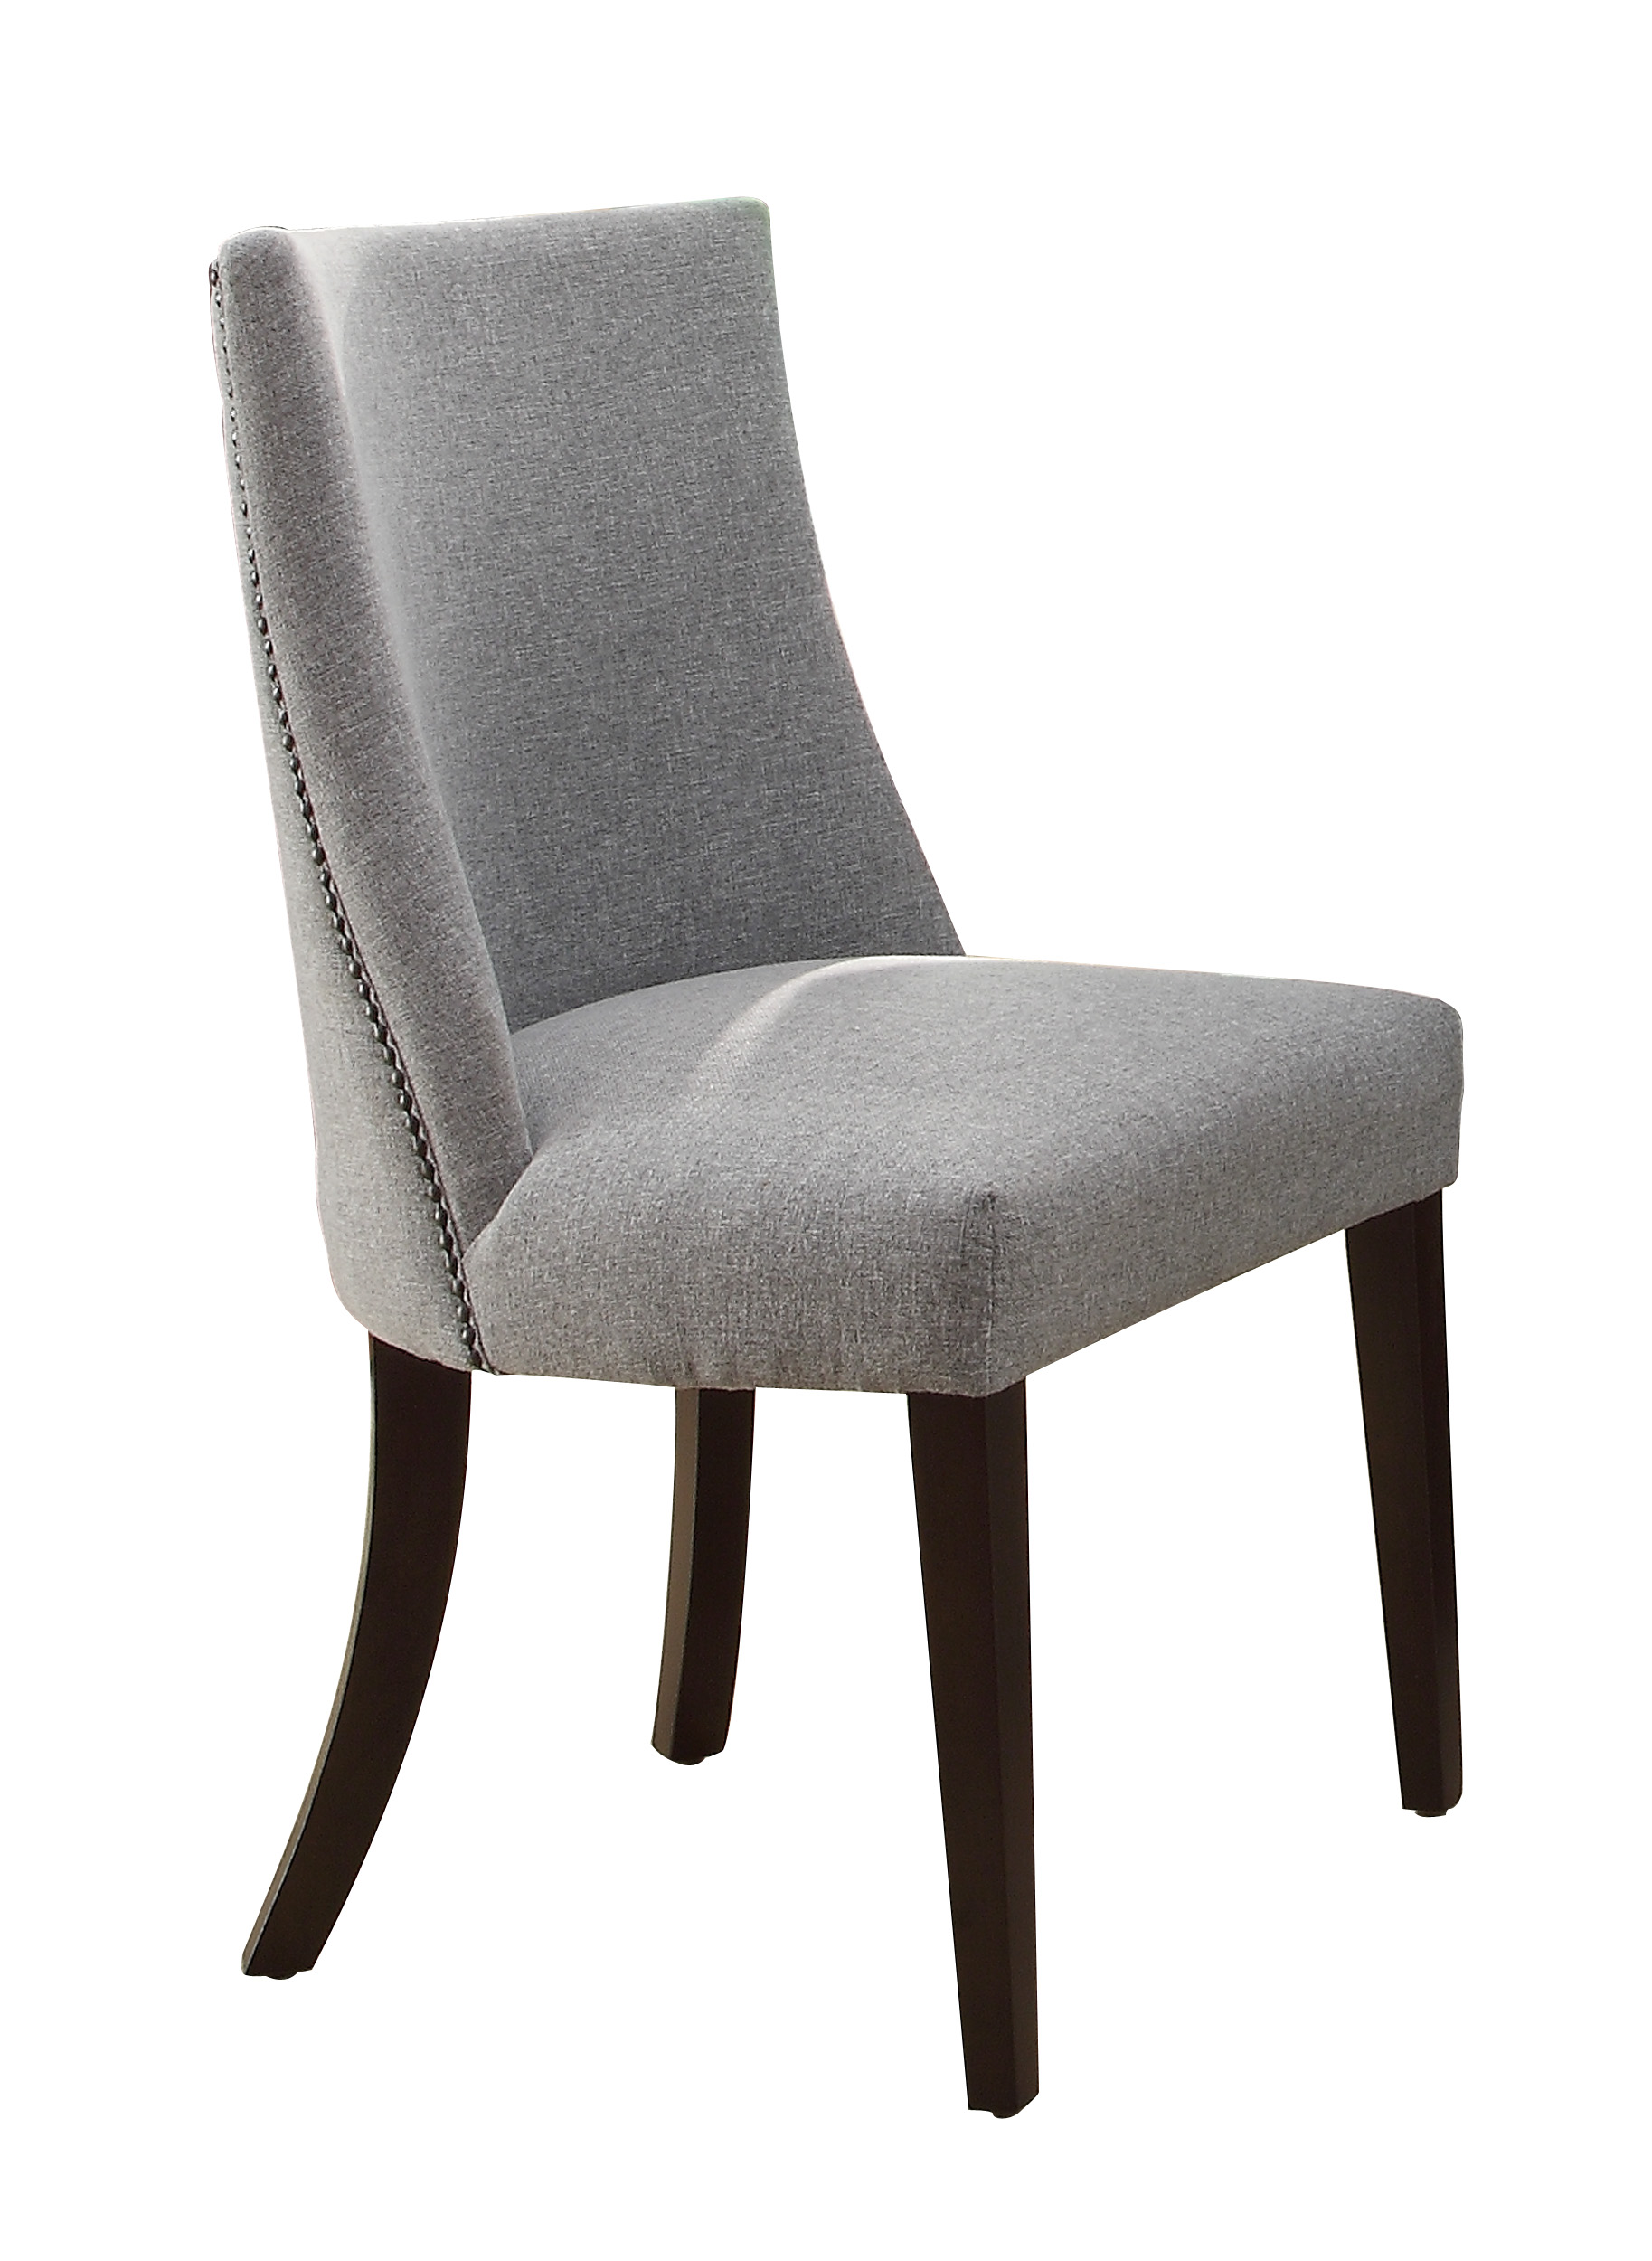 Chicago Grey Upholstered Side Dining Chair Set Of 2